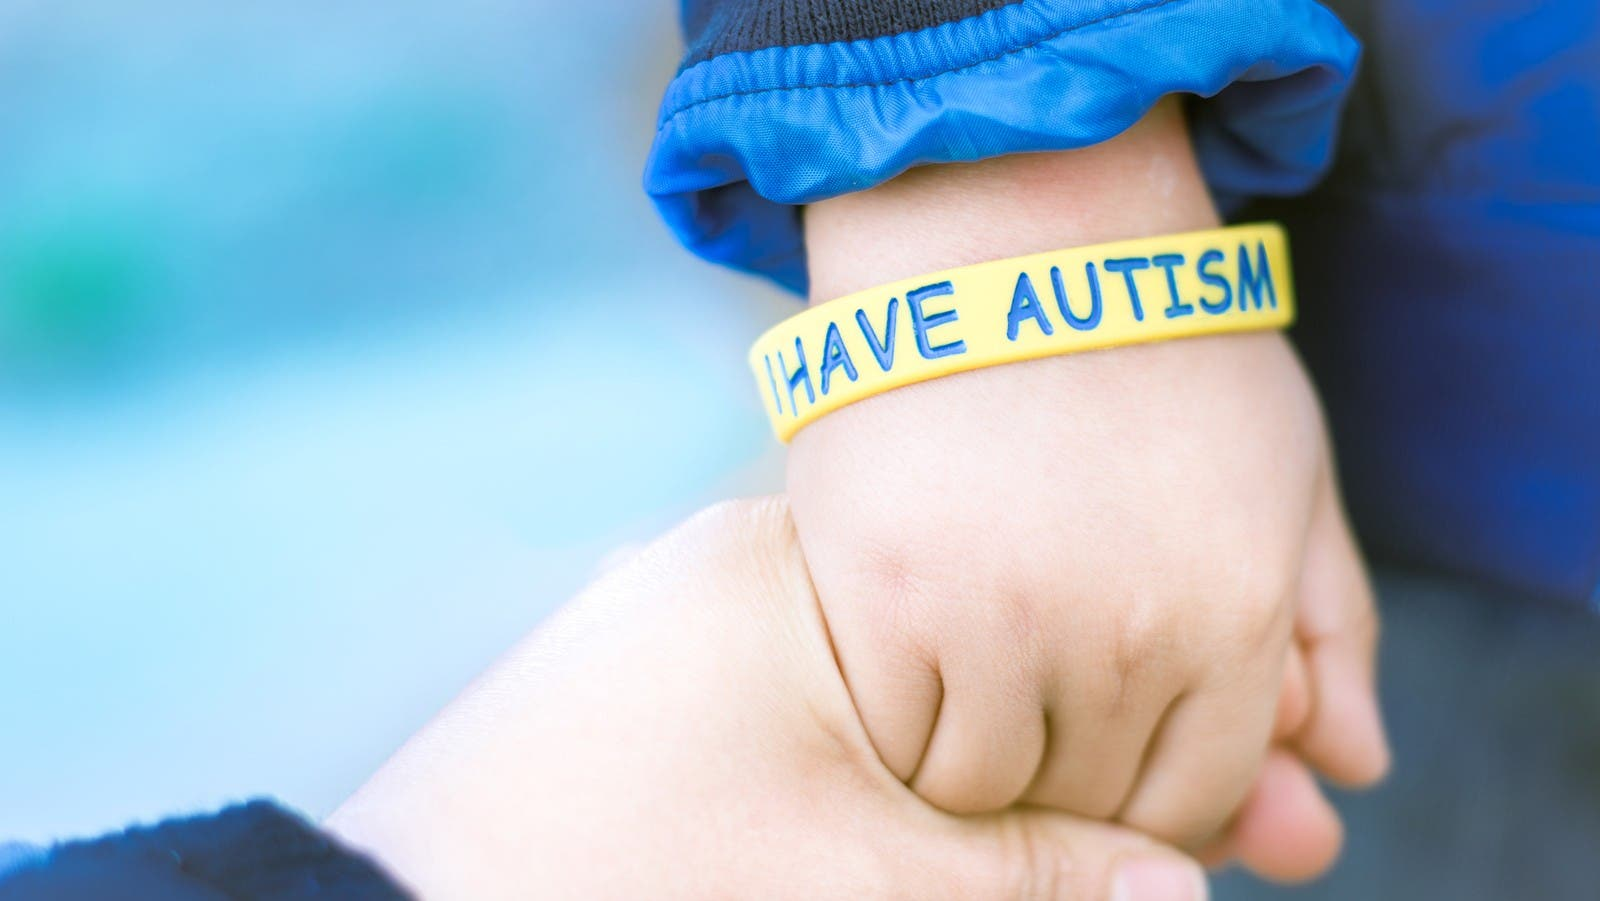 Following the demands of parents who were worried about the future of their autistic children, The 1 2 3 Autism School reopened its doors on September 27, after closing for a short period. (Stock image)